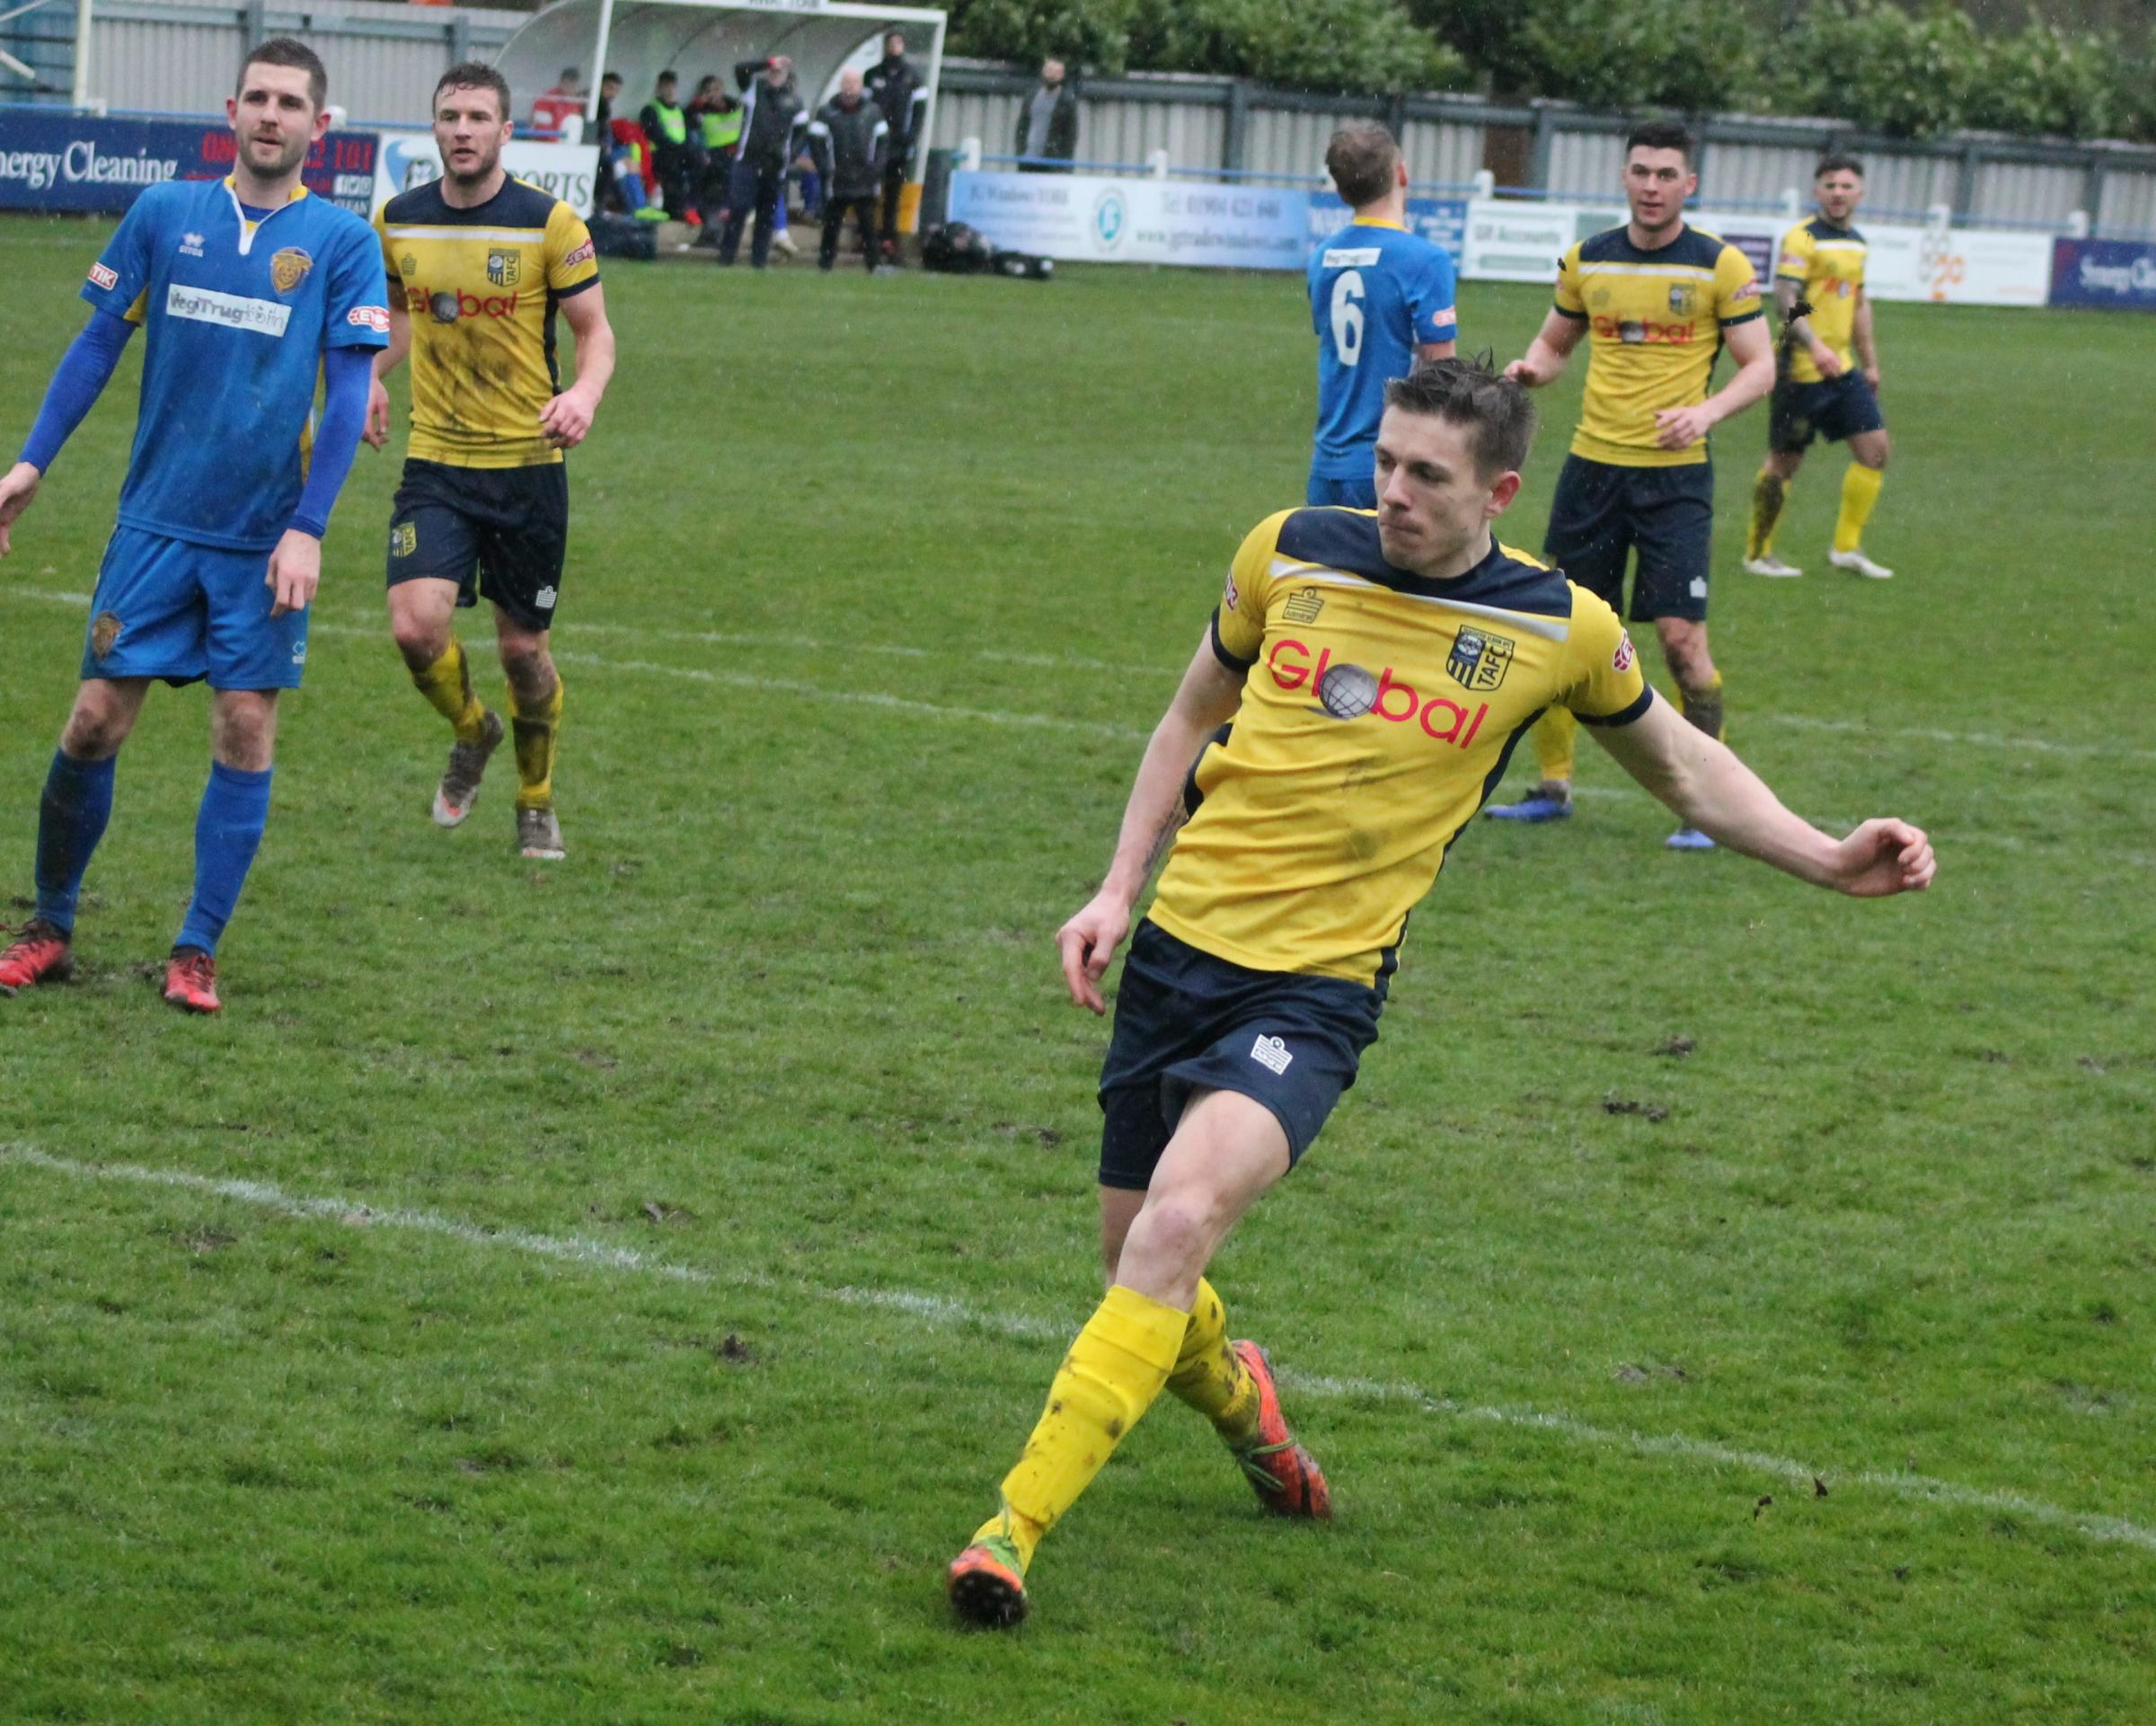 Joe Lumsden was off the mark for Tadcaster Albion this weekend. Picture: Keith A Handley